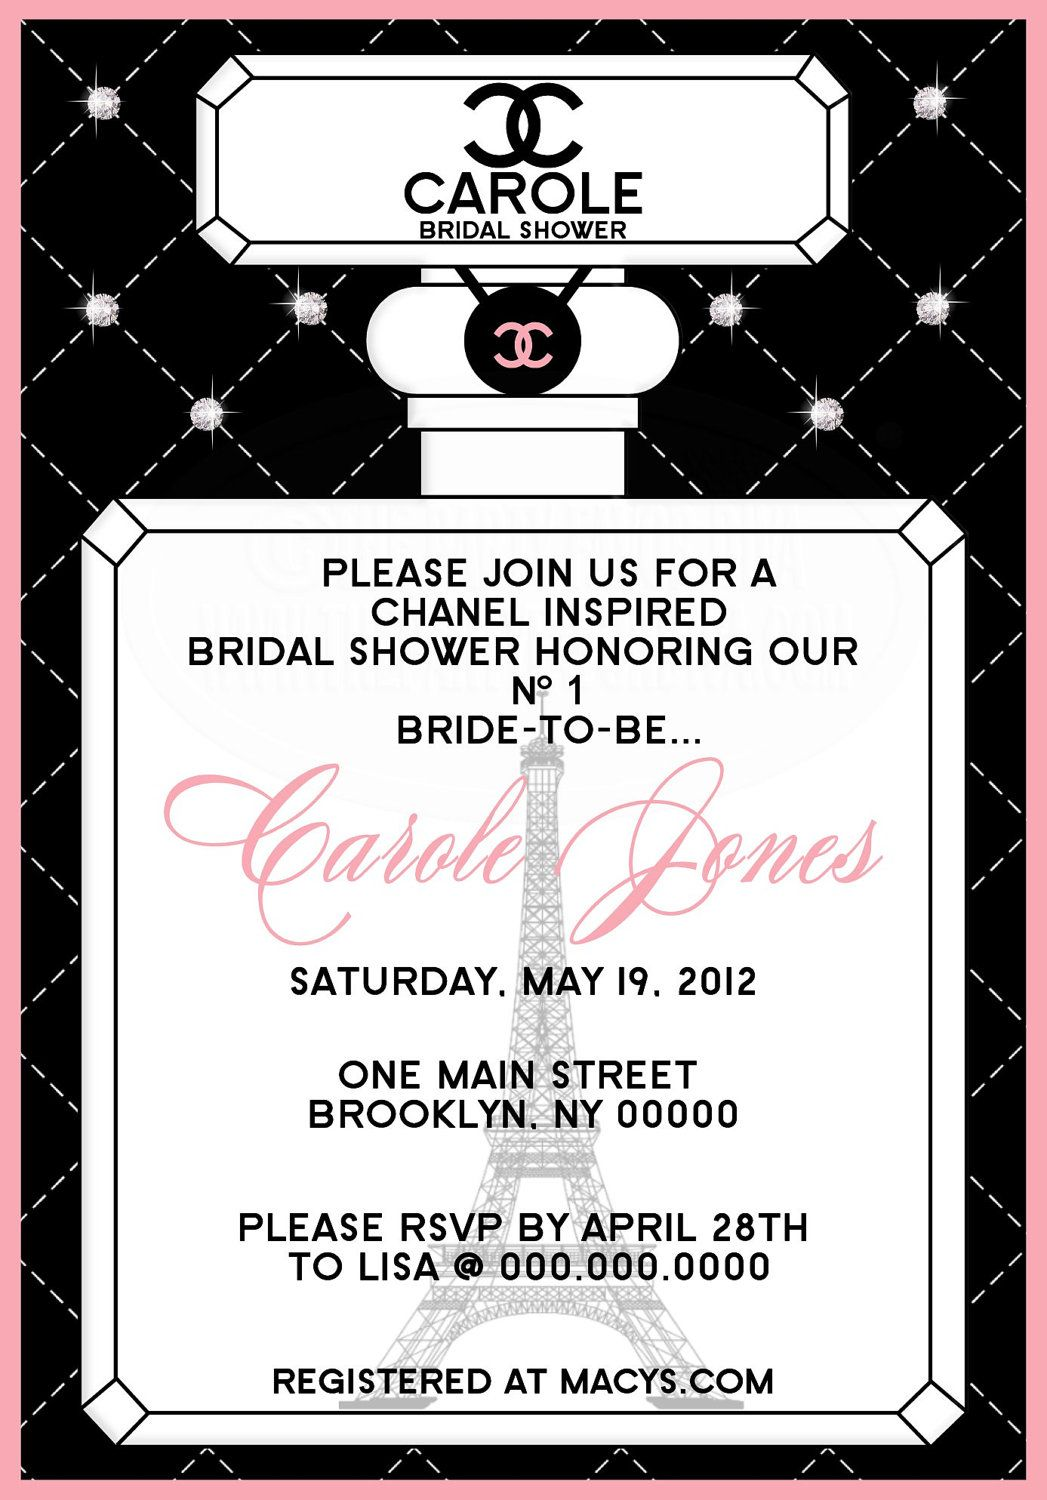 Parisian inspired bridal shower invitation shower invitations chanel inspired bridal shower invitation by thepartyfavordiva 1995 filmwisefo